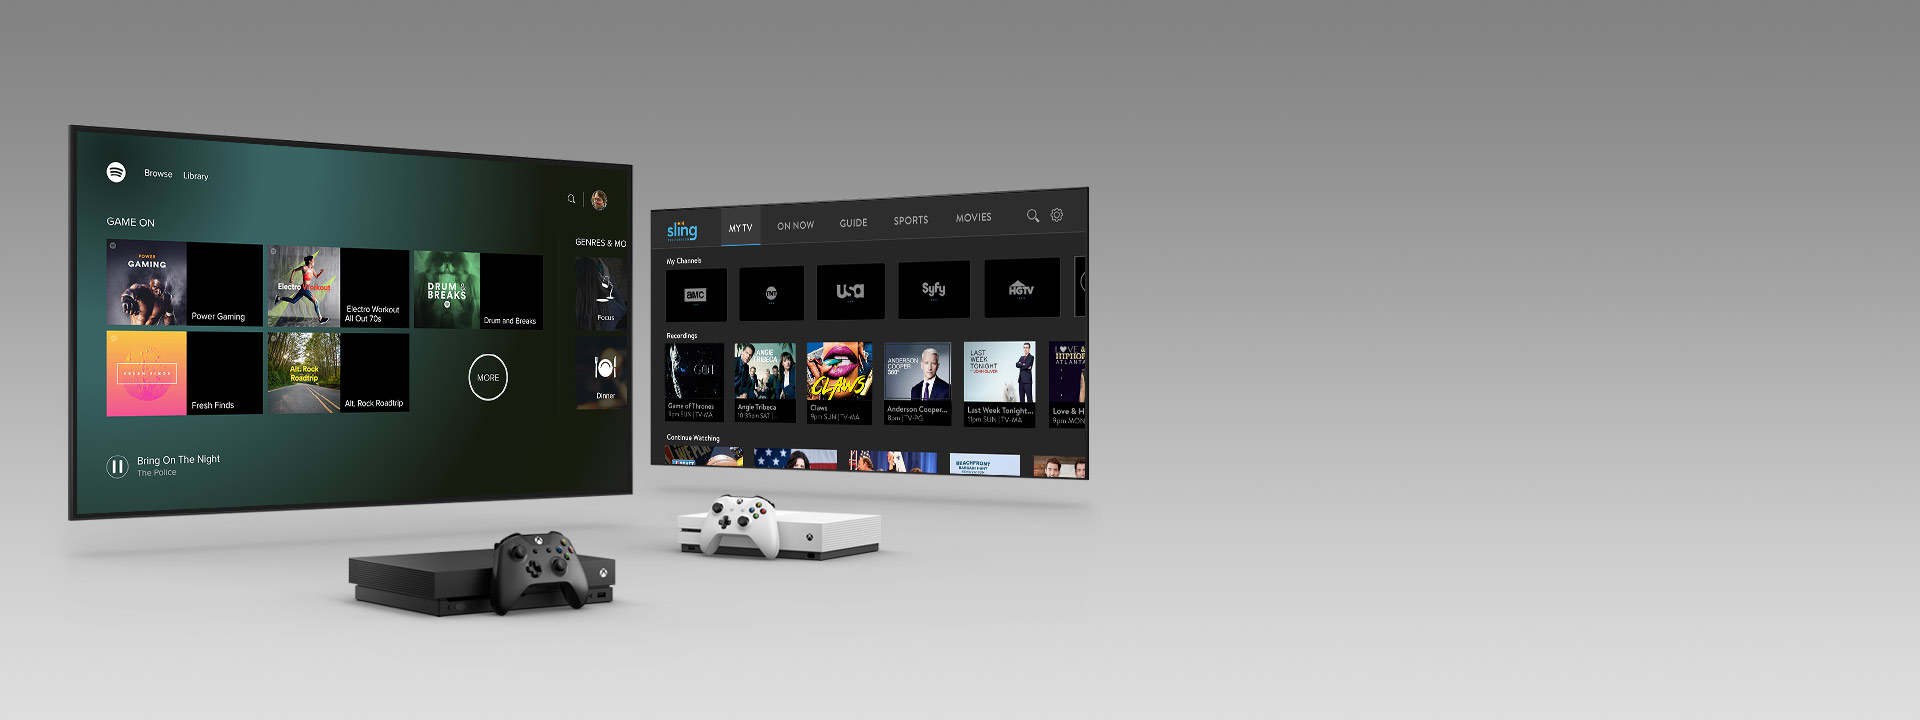 How to watch tv on xbox one x